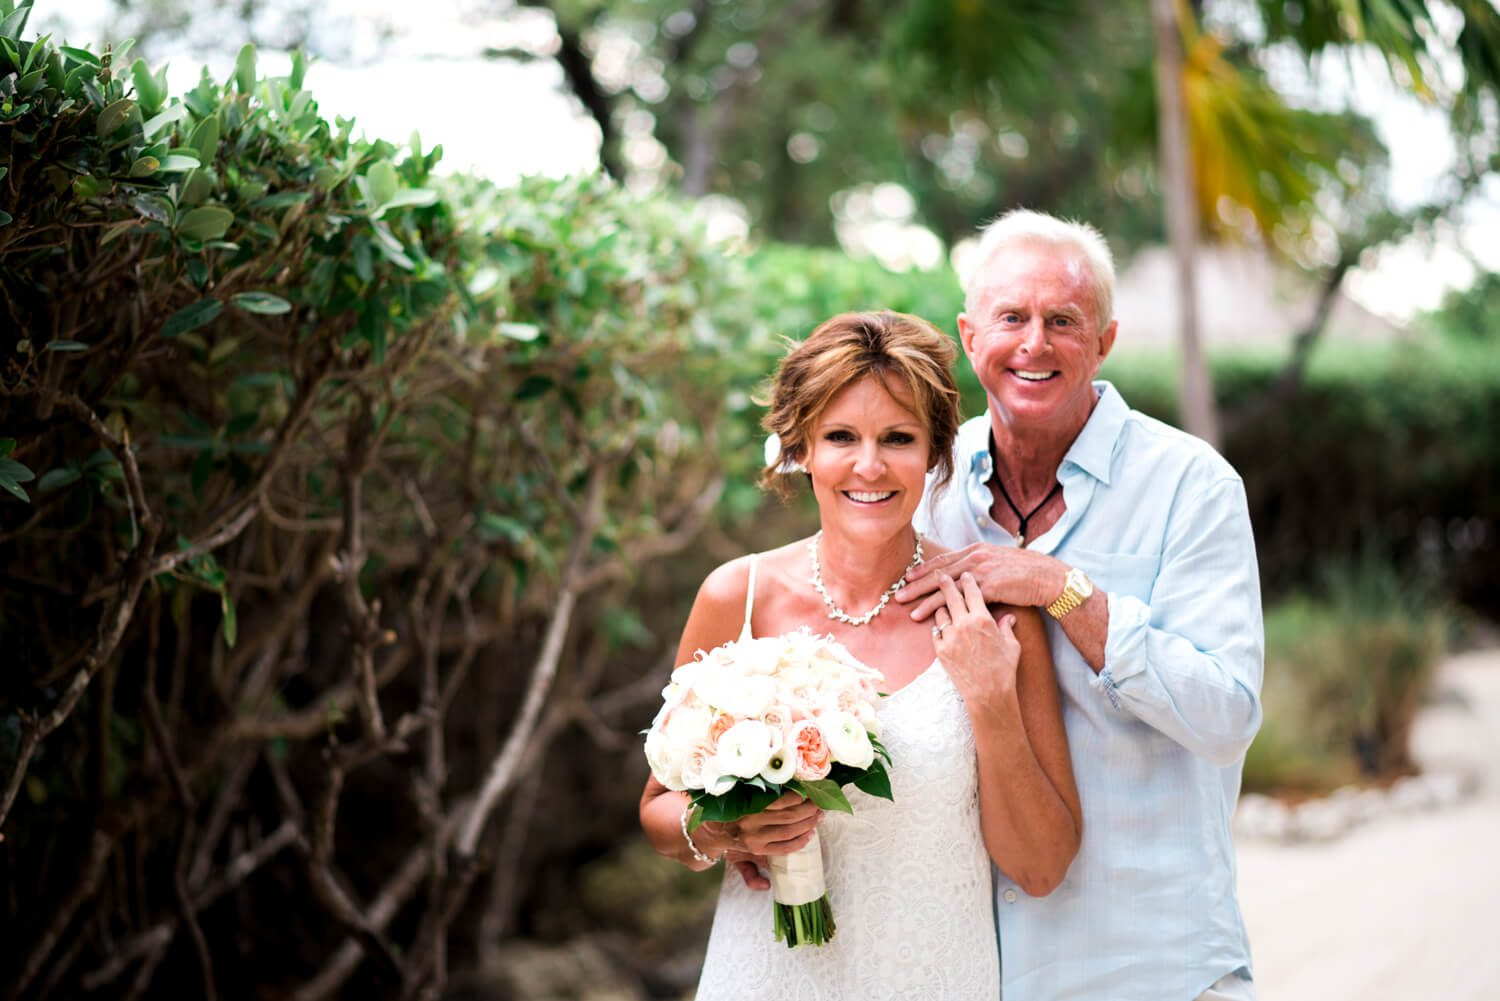 Freas Wedding Photography Key West 26 - Florida Keys Wedding Photographer - Little Palm Island Wedding